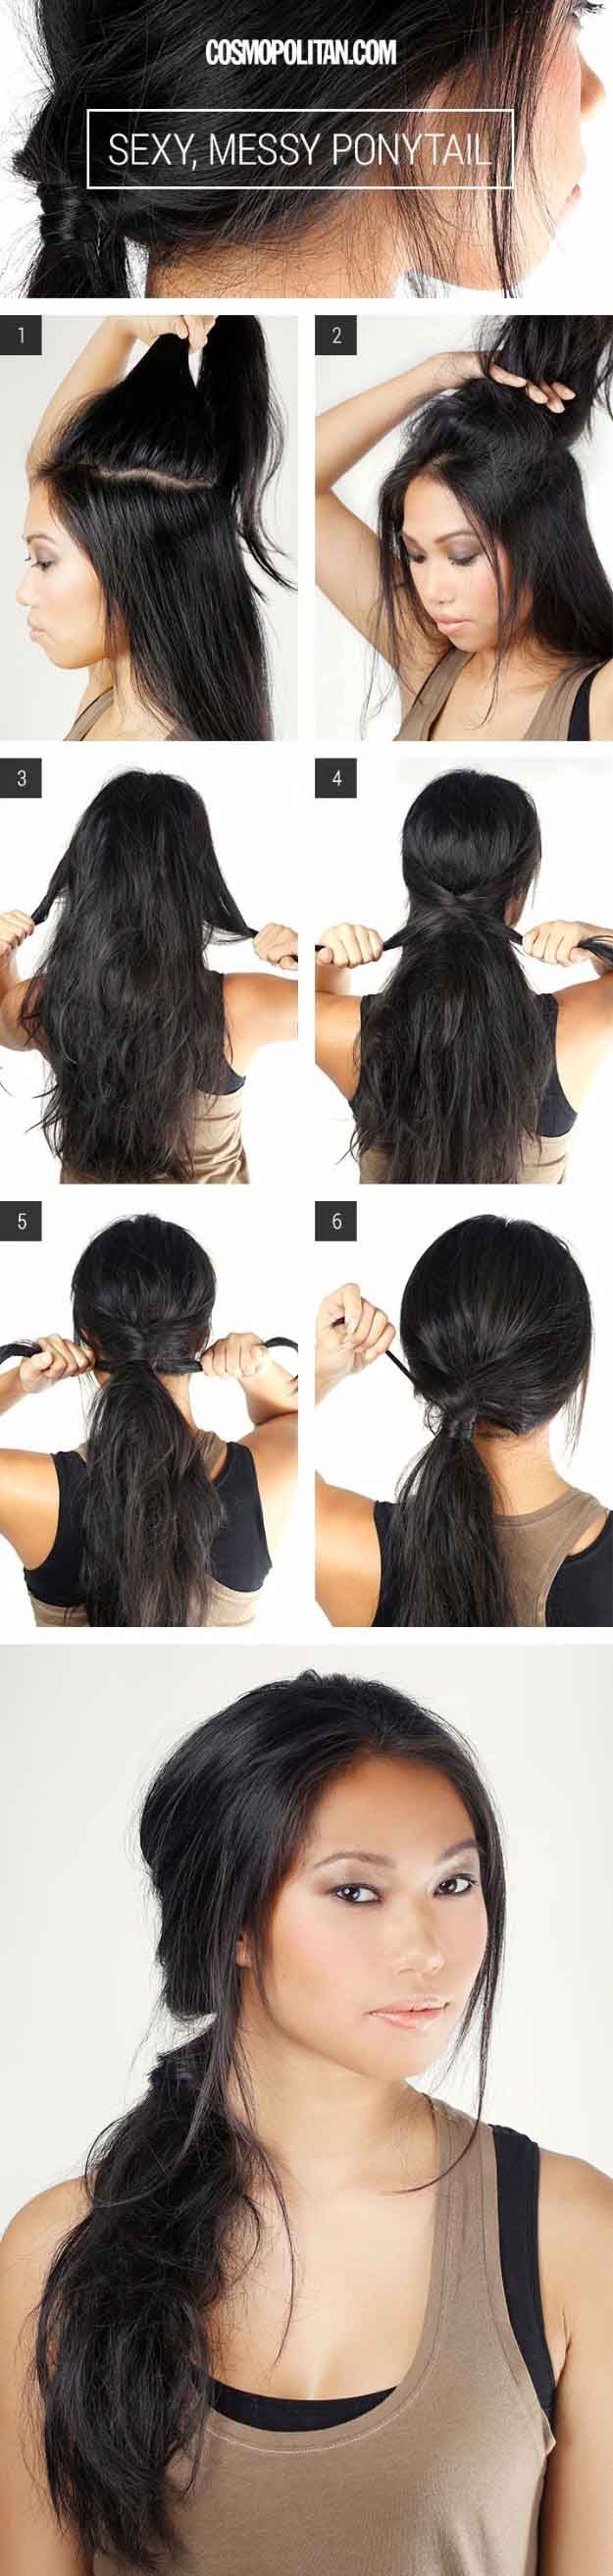 Glam Ponytail Tutorials - Sexy, Messy Ponytail- Simple Hairstyles and Pony Tails...